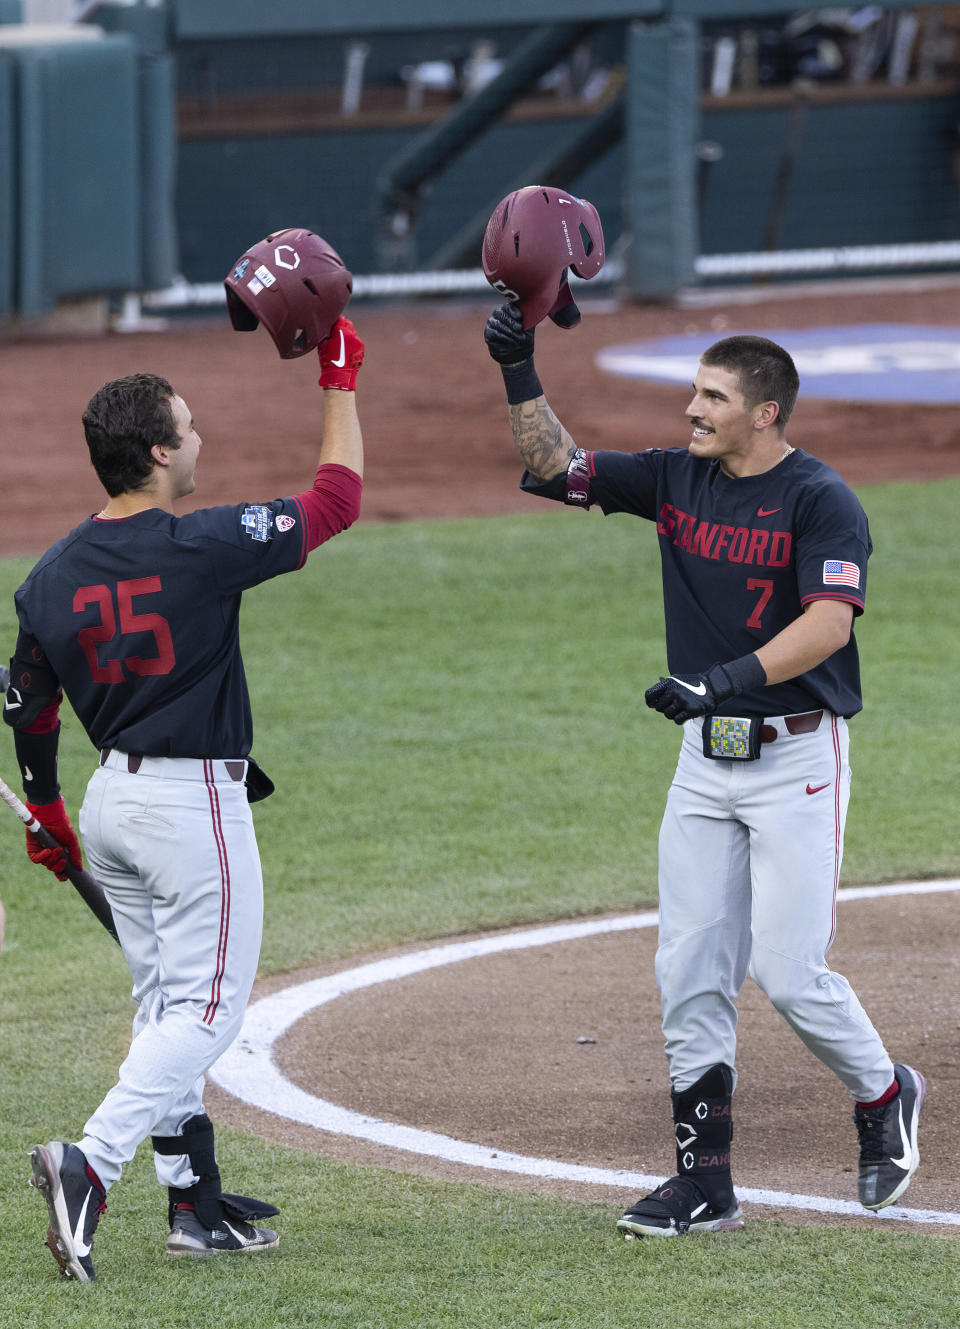 Stanford's Brock Jones (7), right, celebrates with Kody Huff (25) after hitting a home run in the third inning during a baseball game in the College World Series Wednesday, June 23, 2021, at TD Ameritrade Park in Omaha, Neb. (AP Photo/Rebecca S. Gratz)